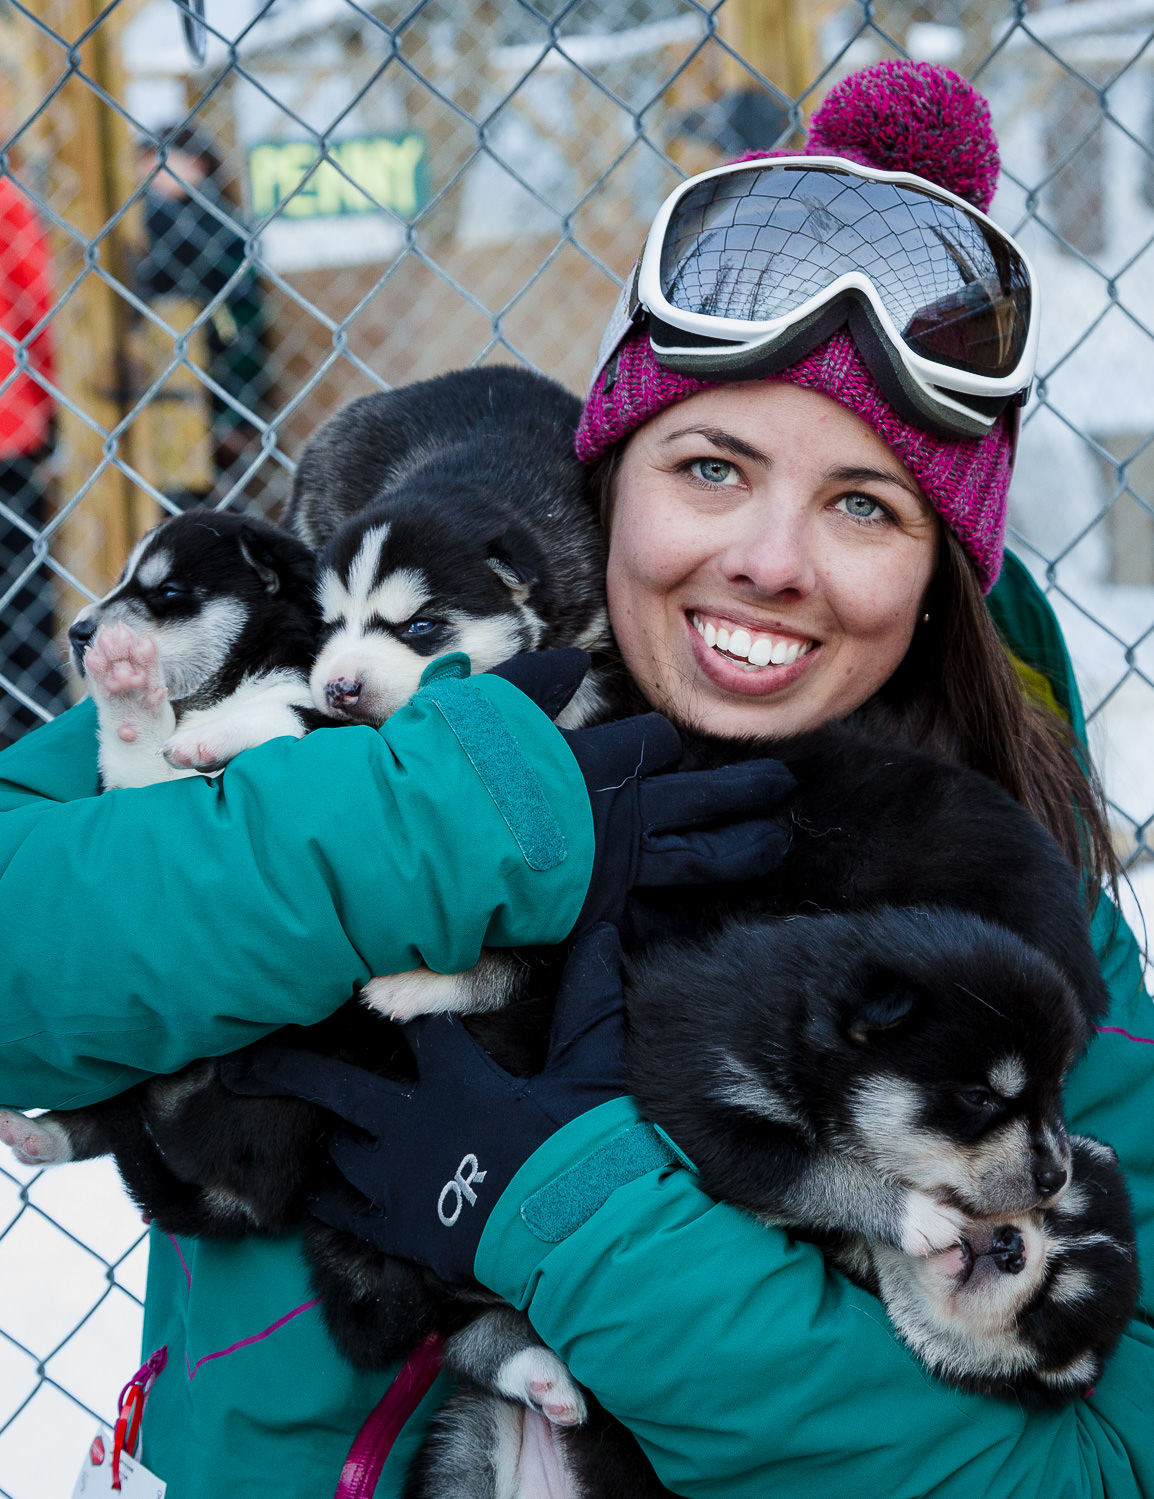 Woman-Siberian-Husky-Puppies-Colorado_0001